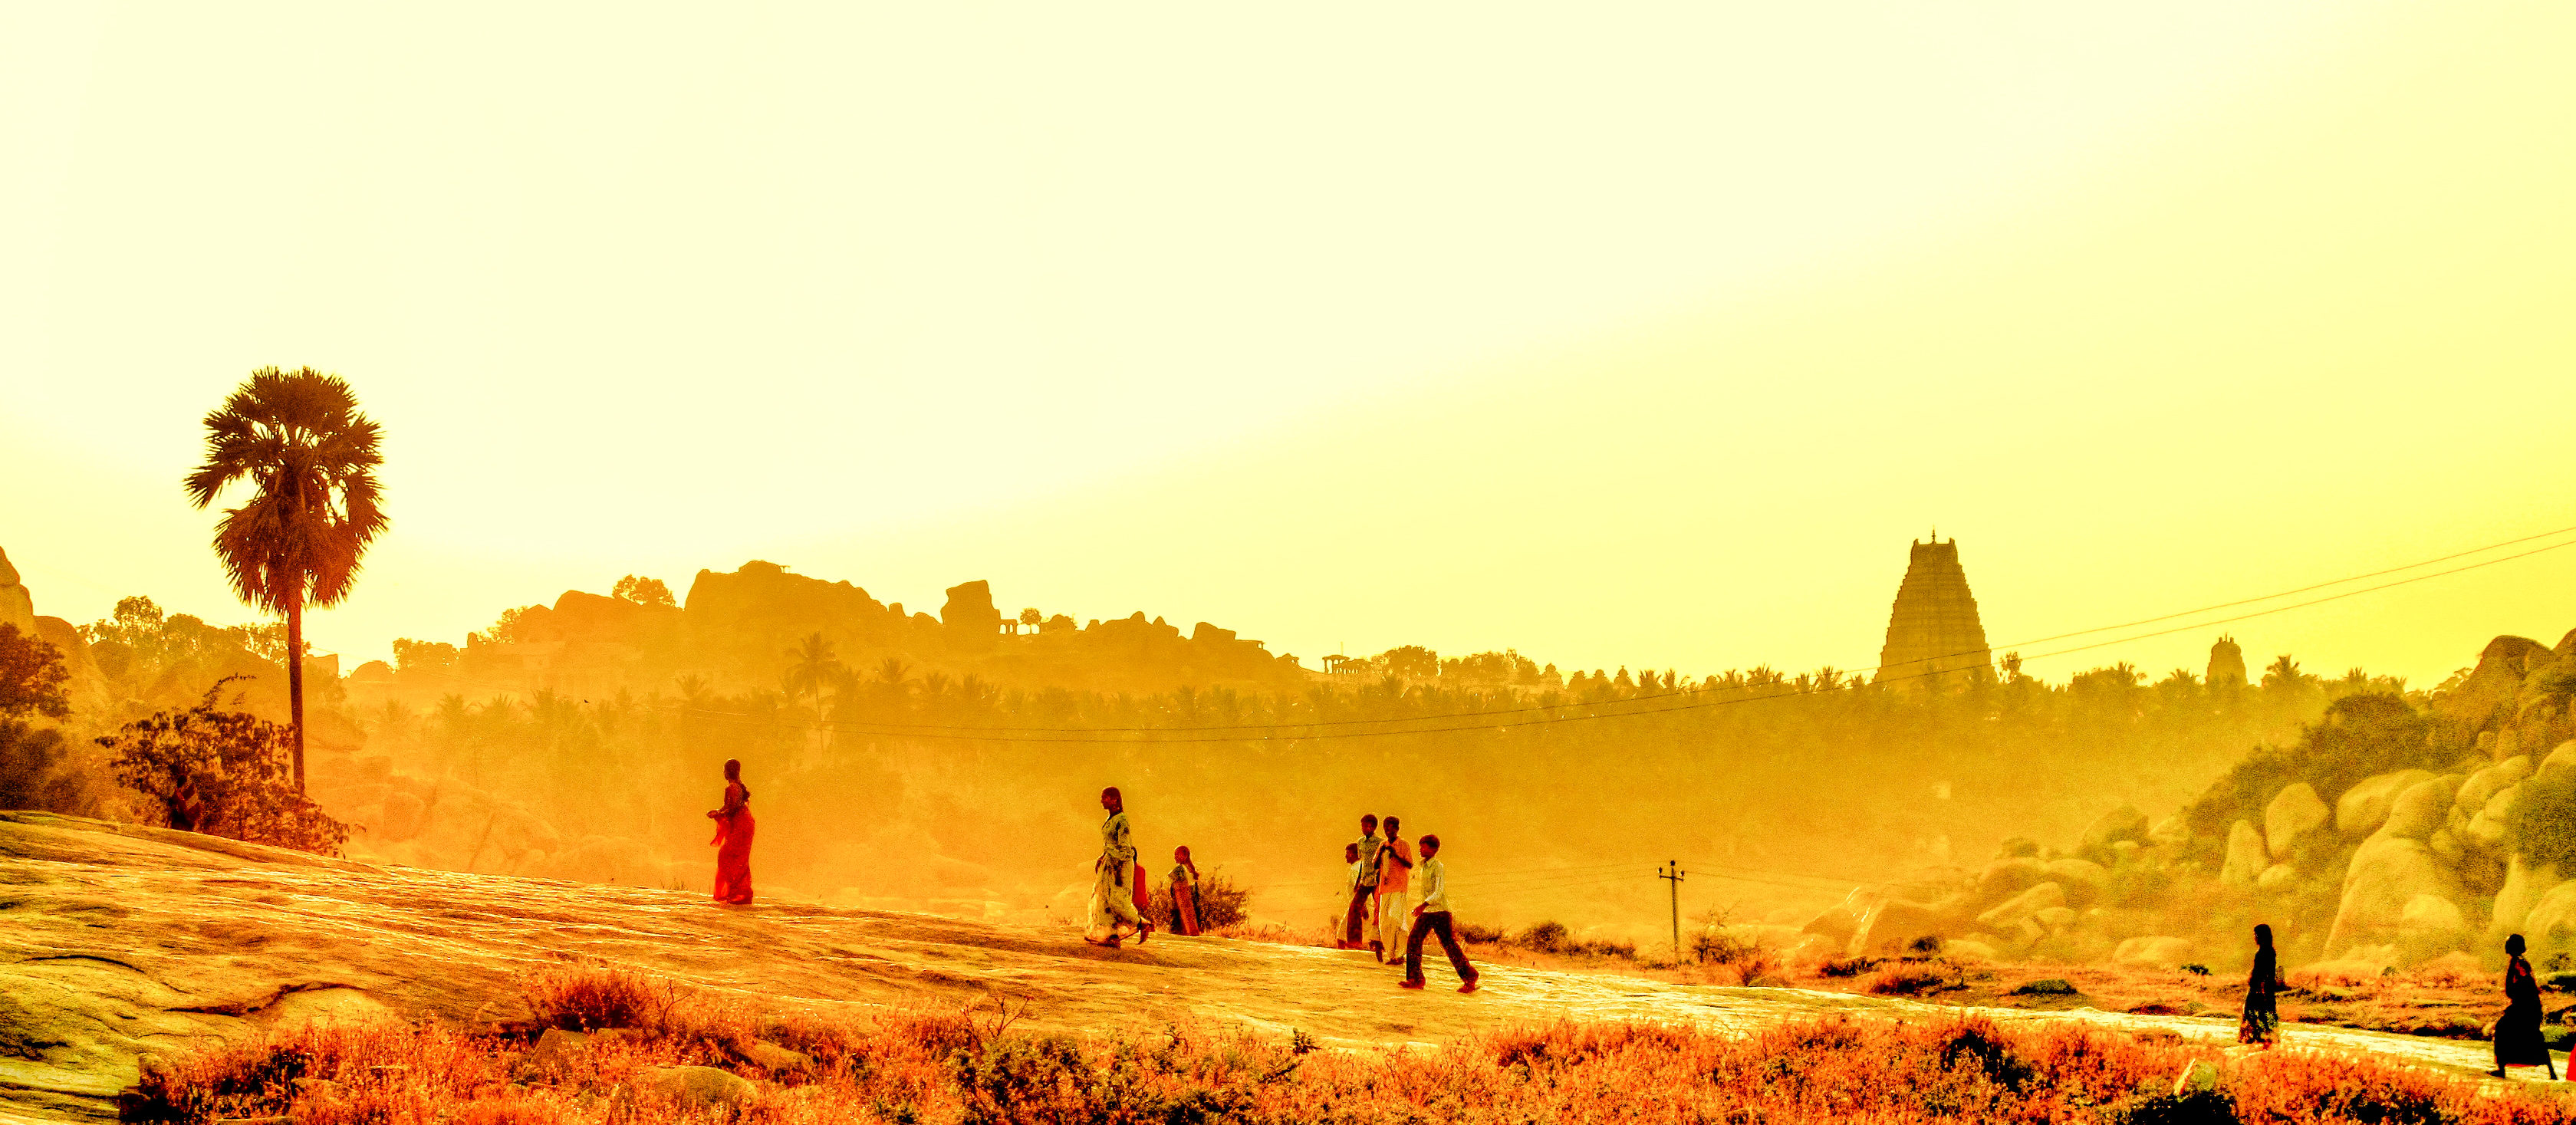 periode - zomer - seizoen, summer, hampi, best time to visit India, south india travels